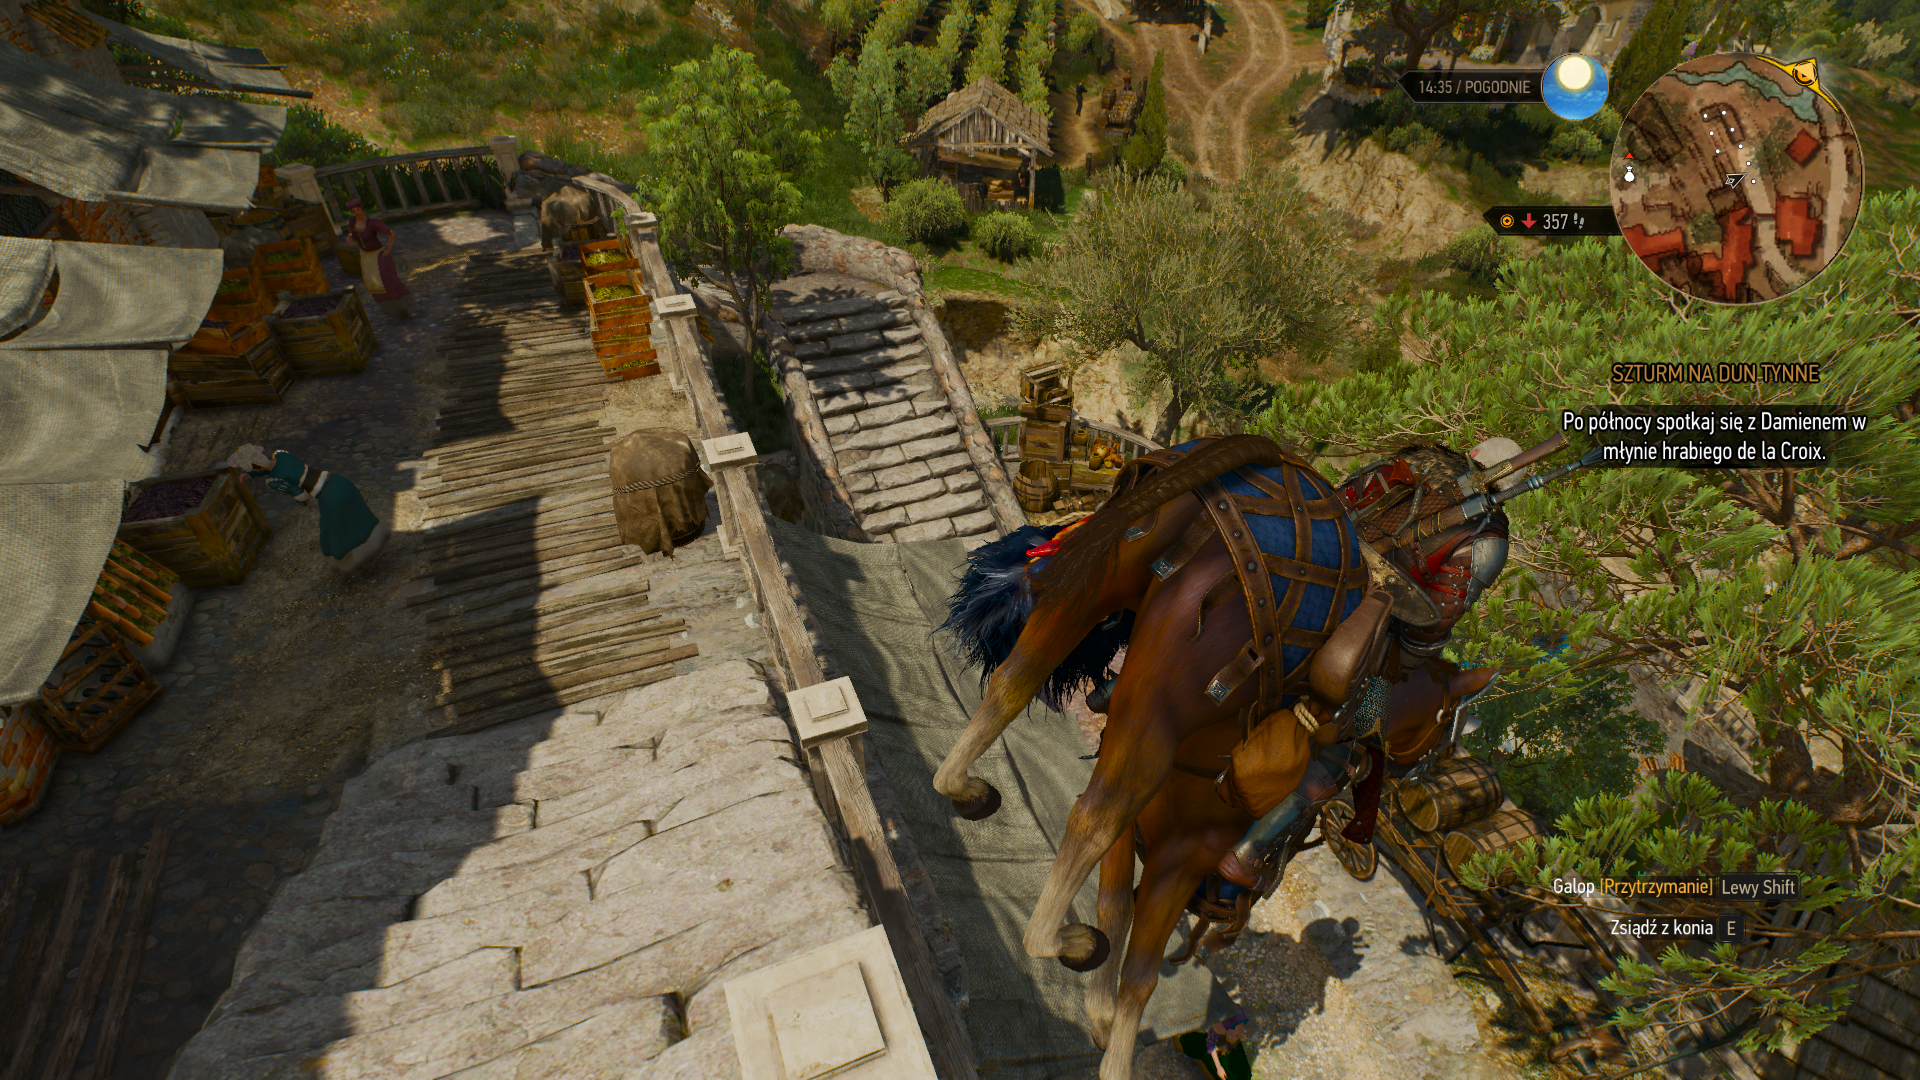 The Witcher 3 29.12.2018 18_46_51.png - Witcher 3: Wild Hunt, the